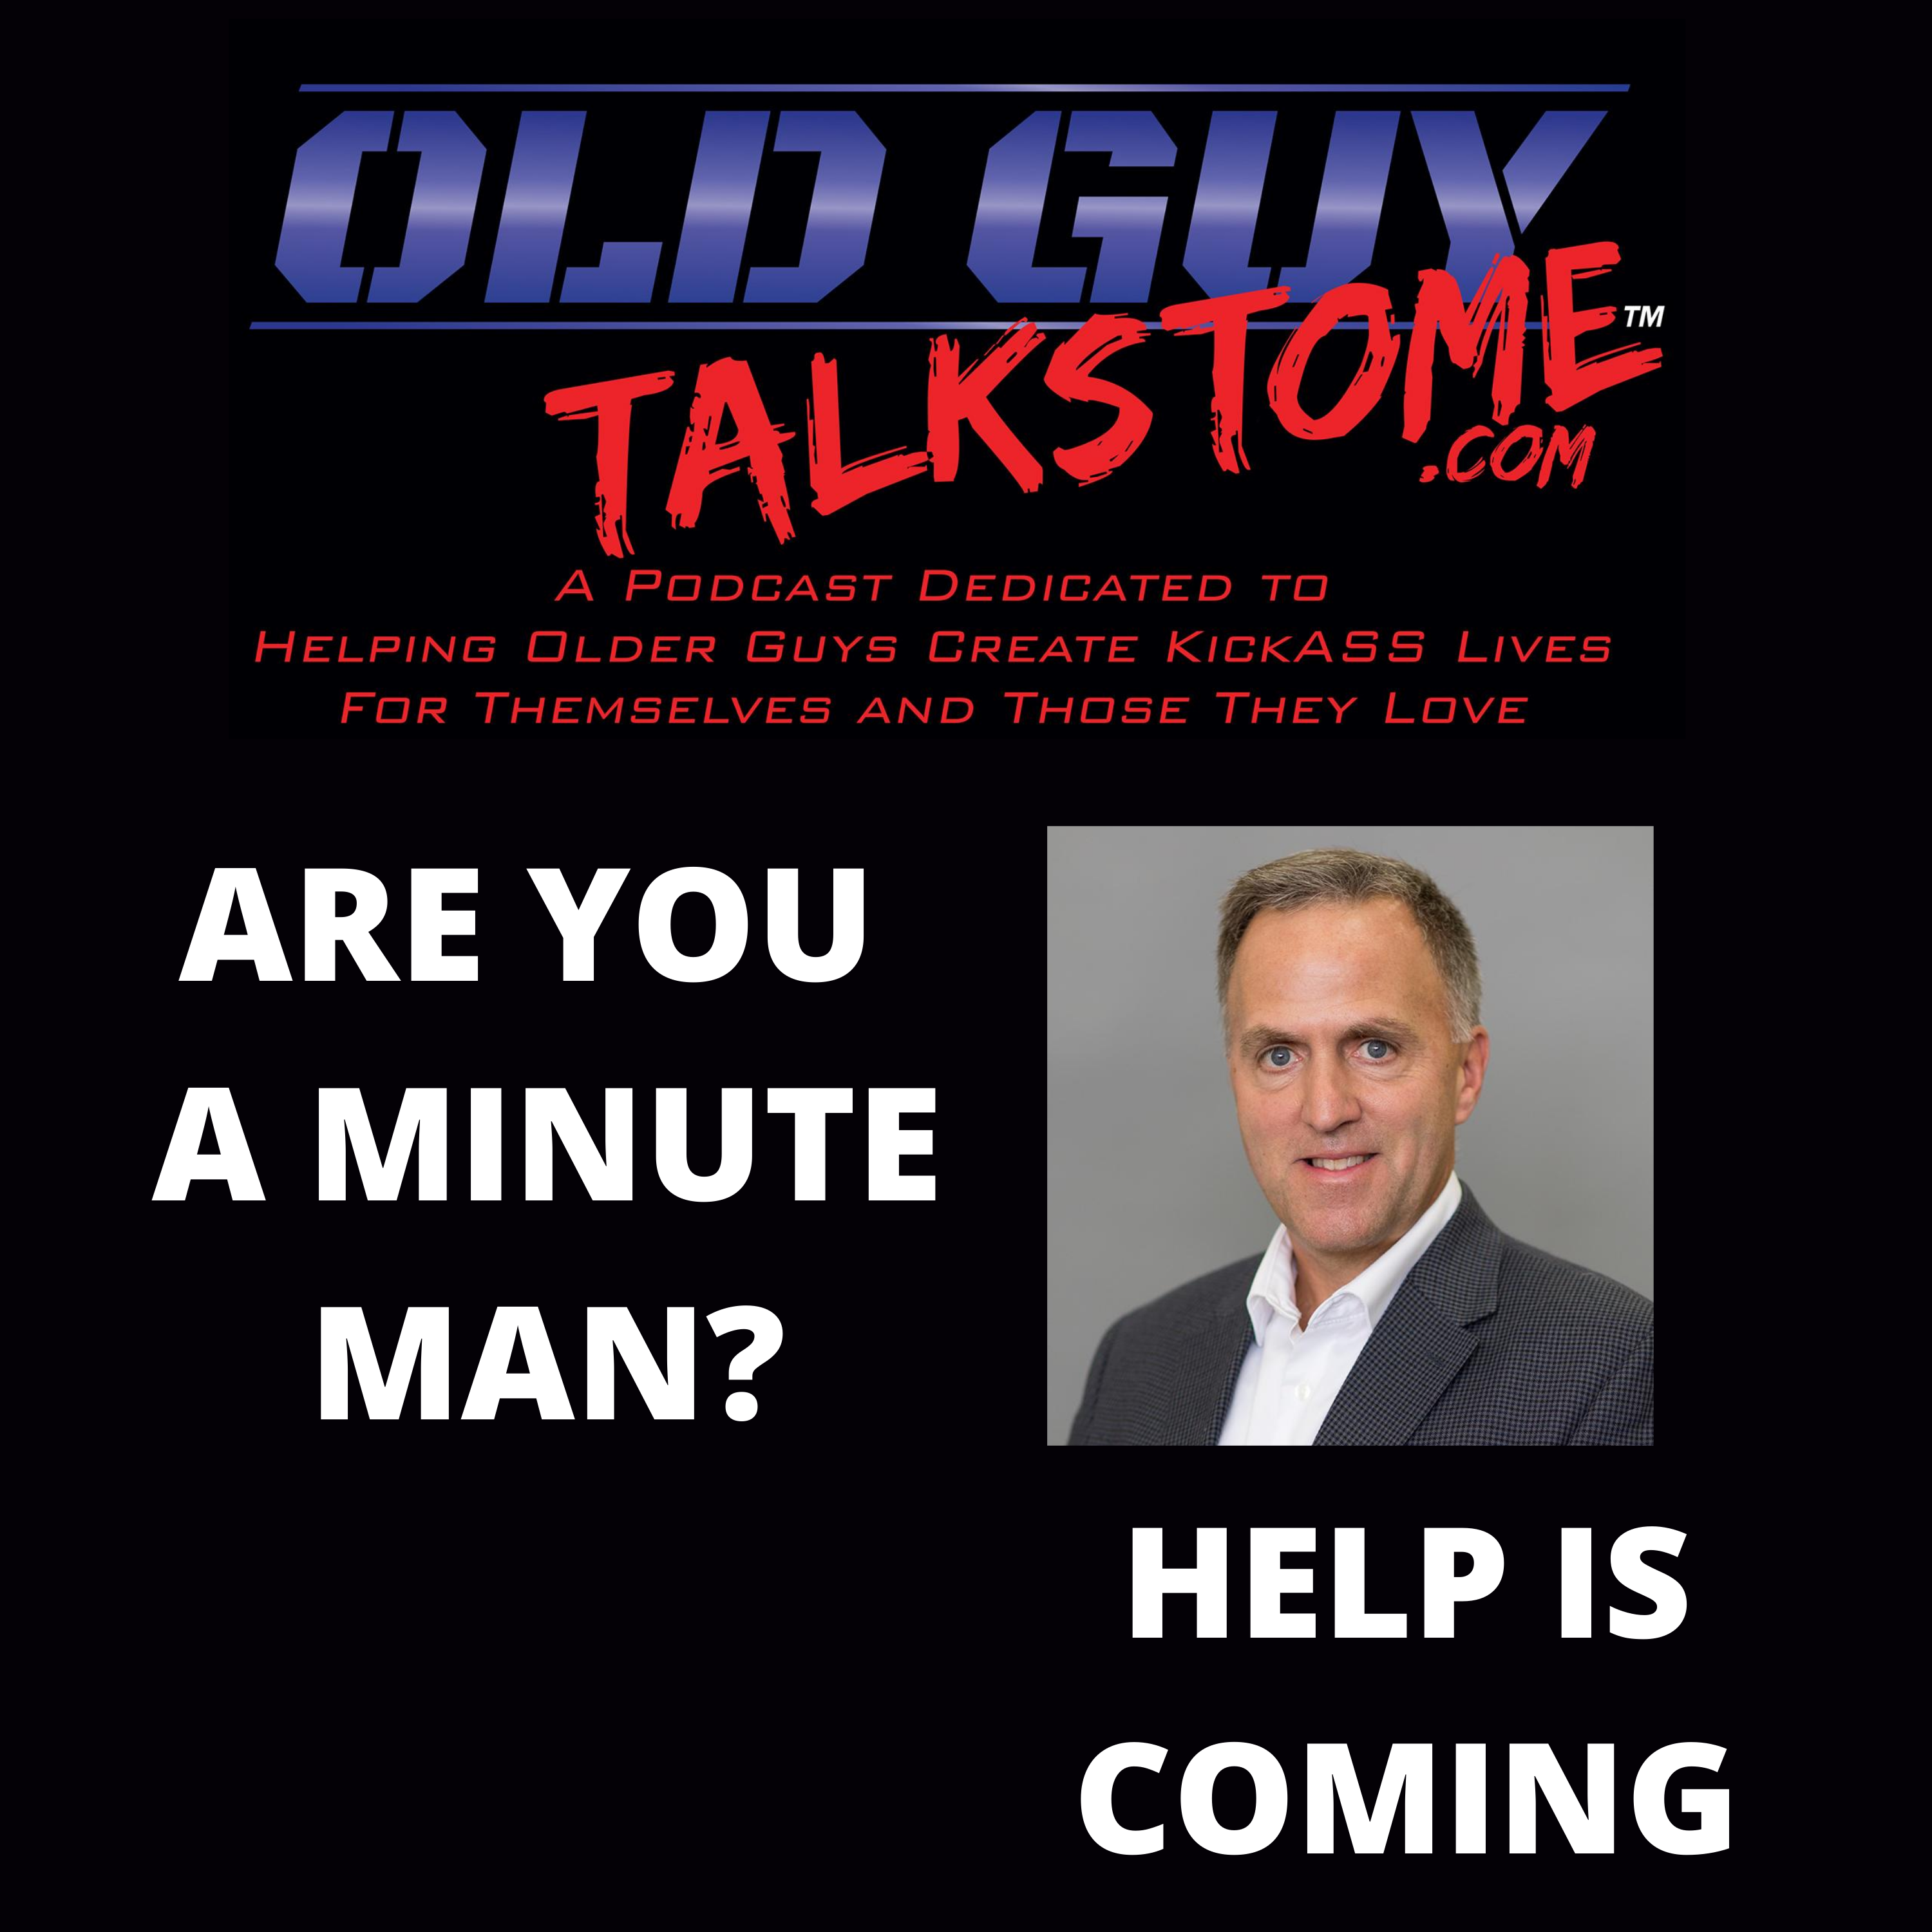 OldGuyTalksToMe - Are You A Minute Man?